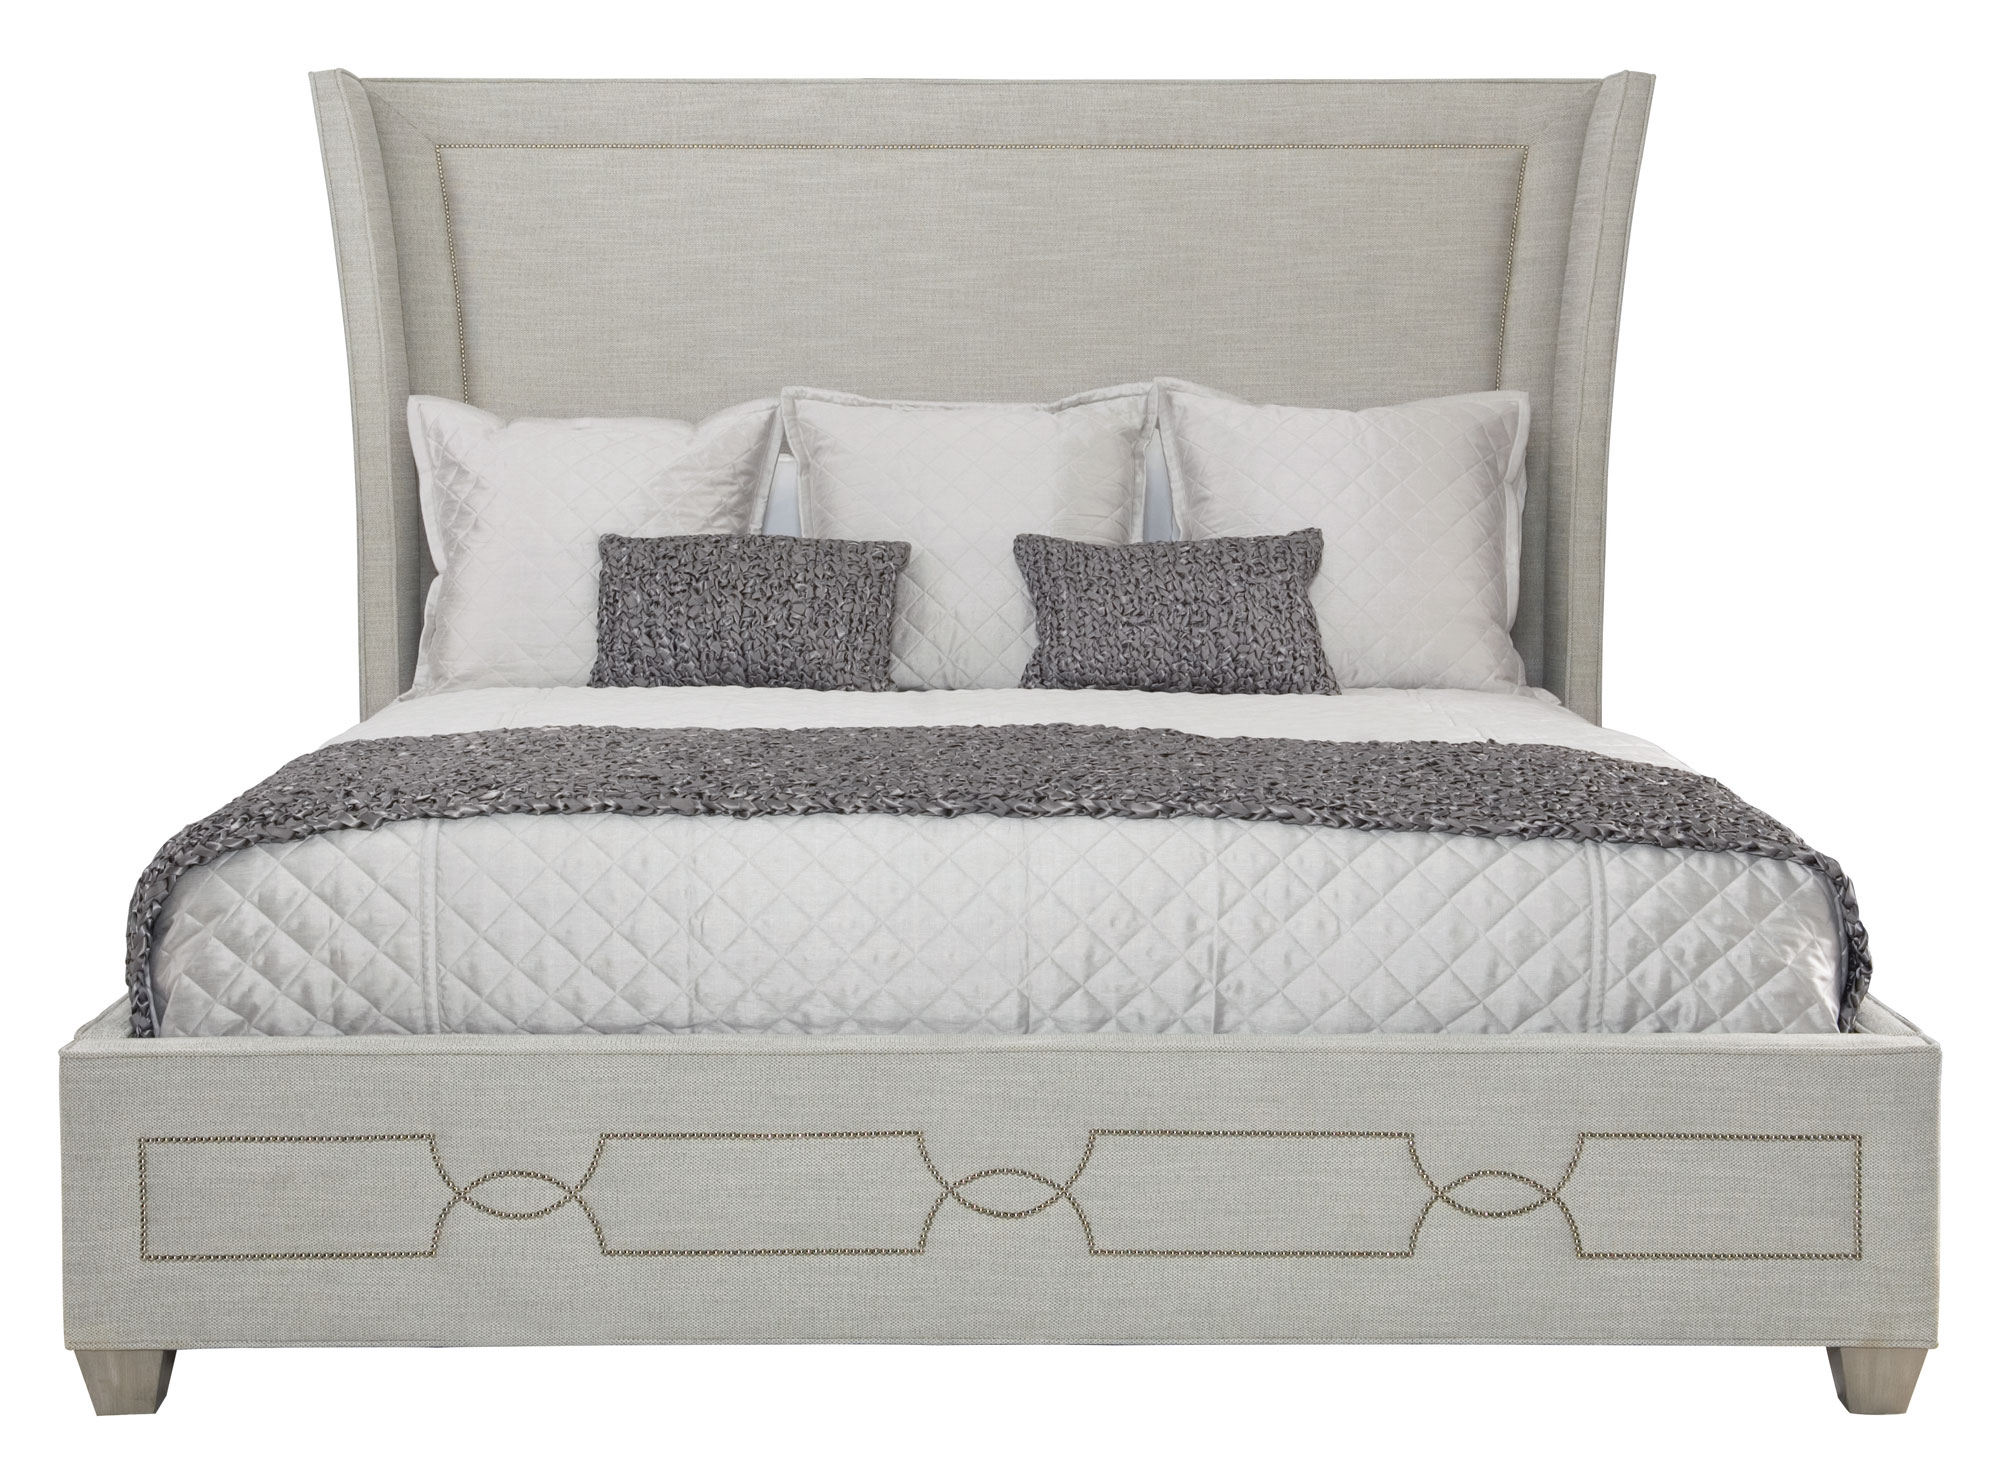 products bed queen item hillsdale bombay number upholstered beds